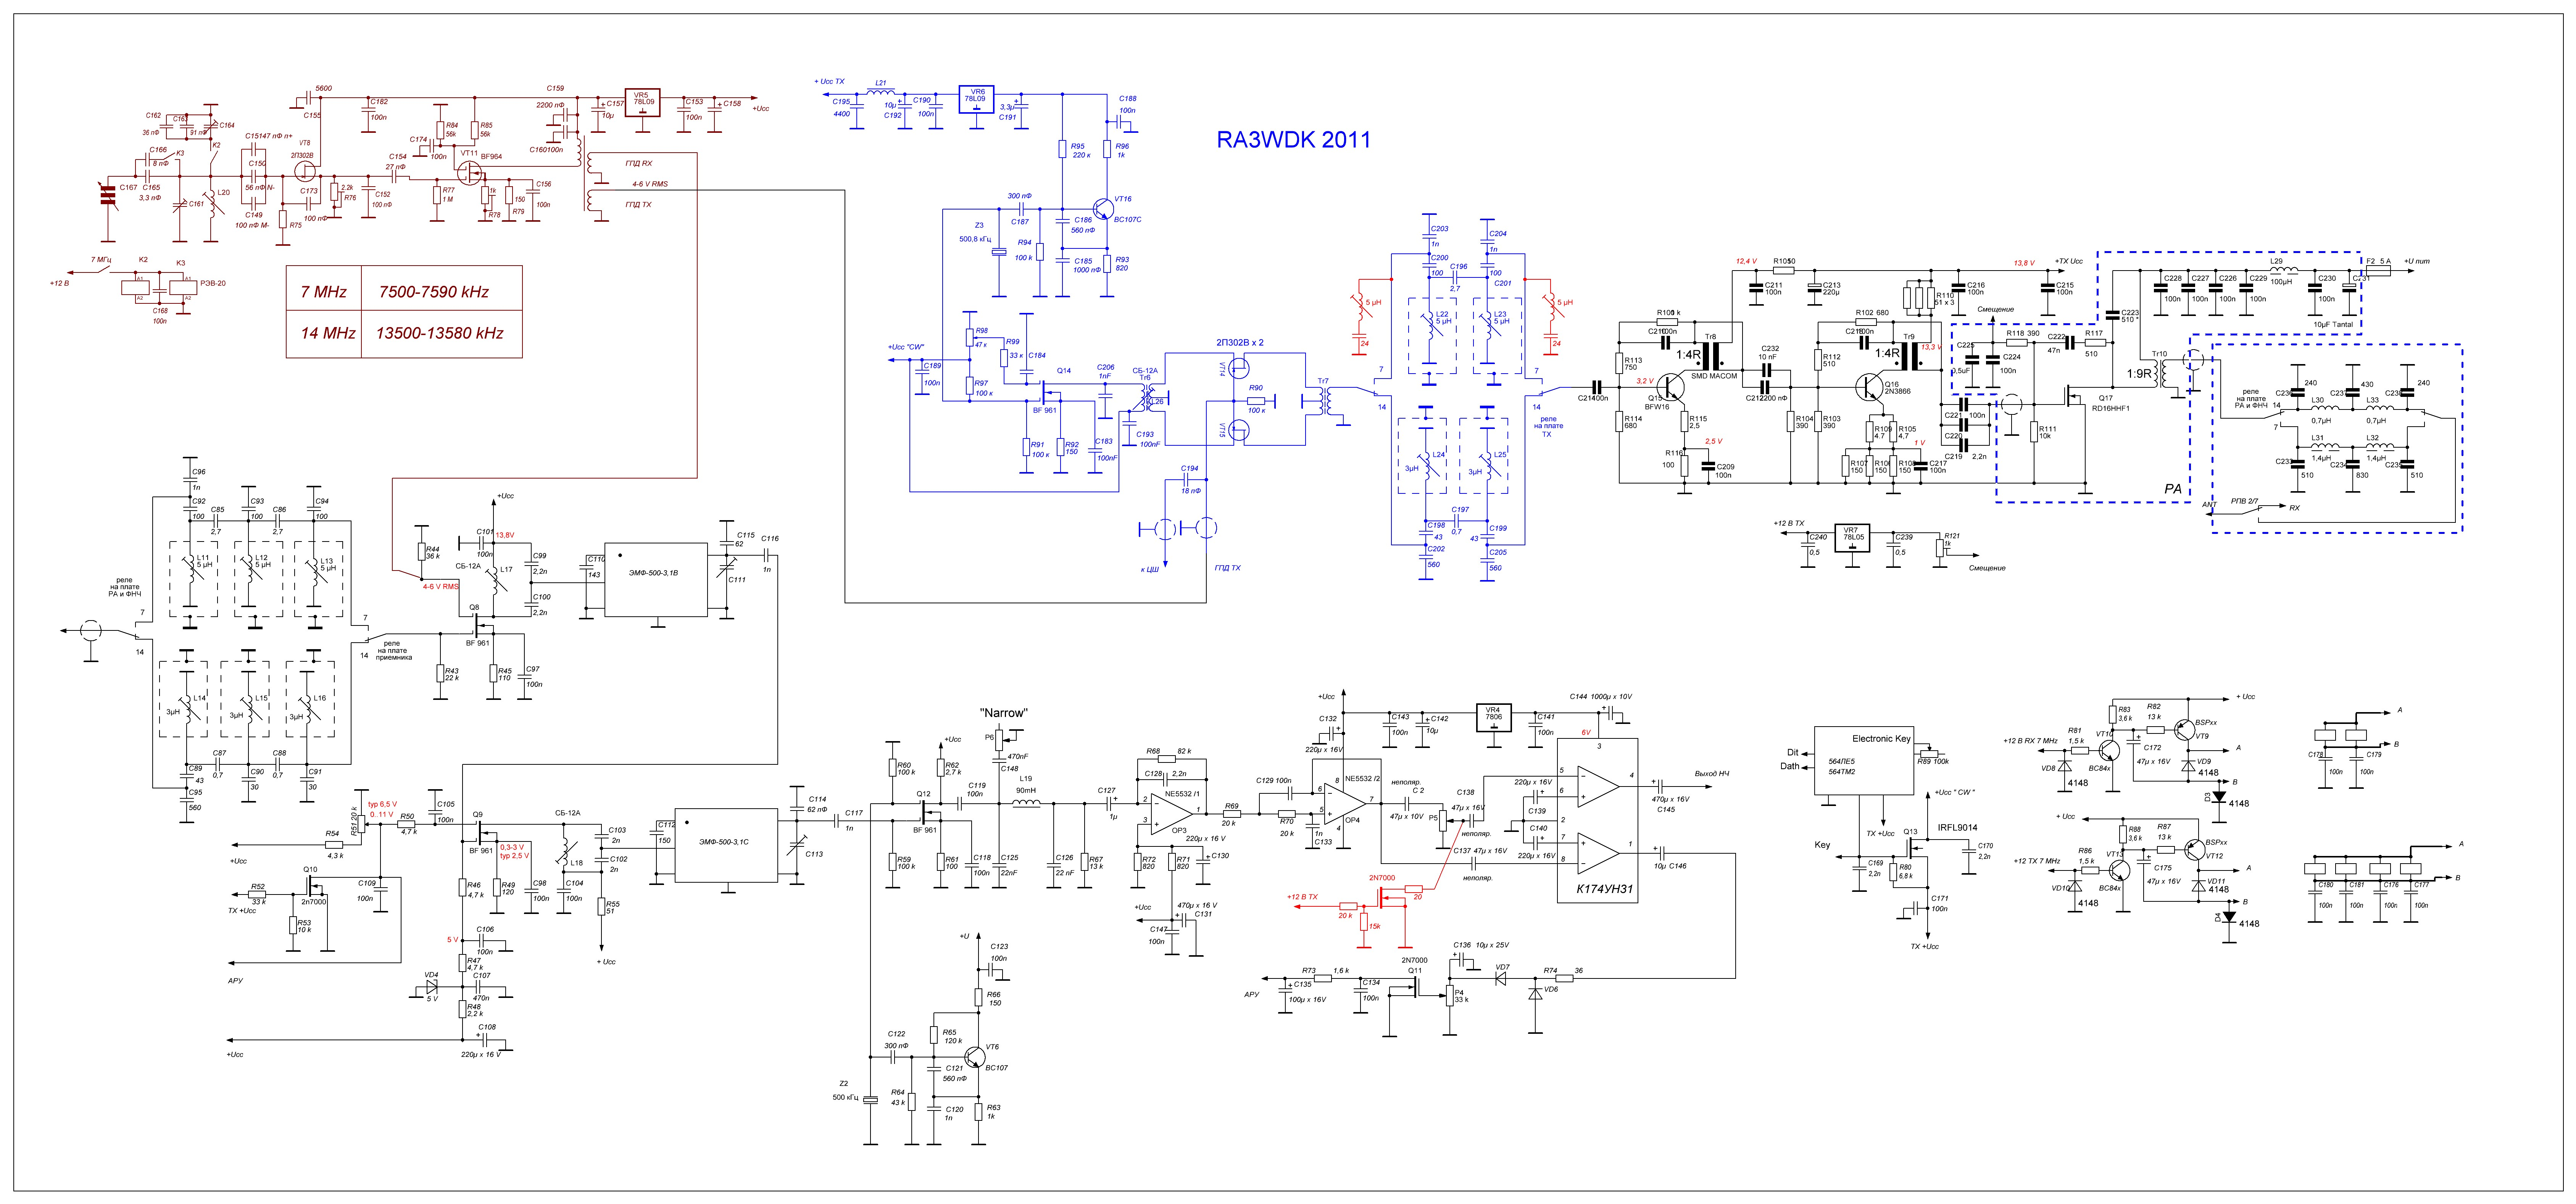 Ra3wdk Home Page 144mhz Power Amplifier Circuit Full Schematic Diagram Modifications